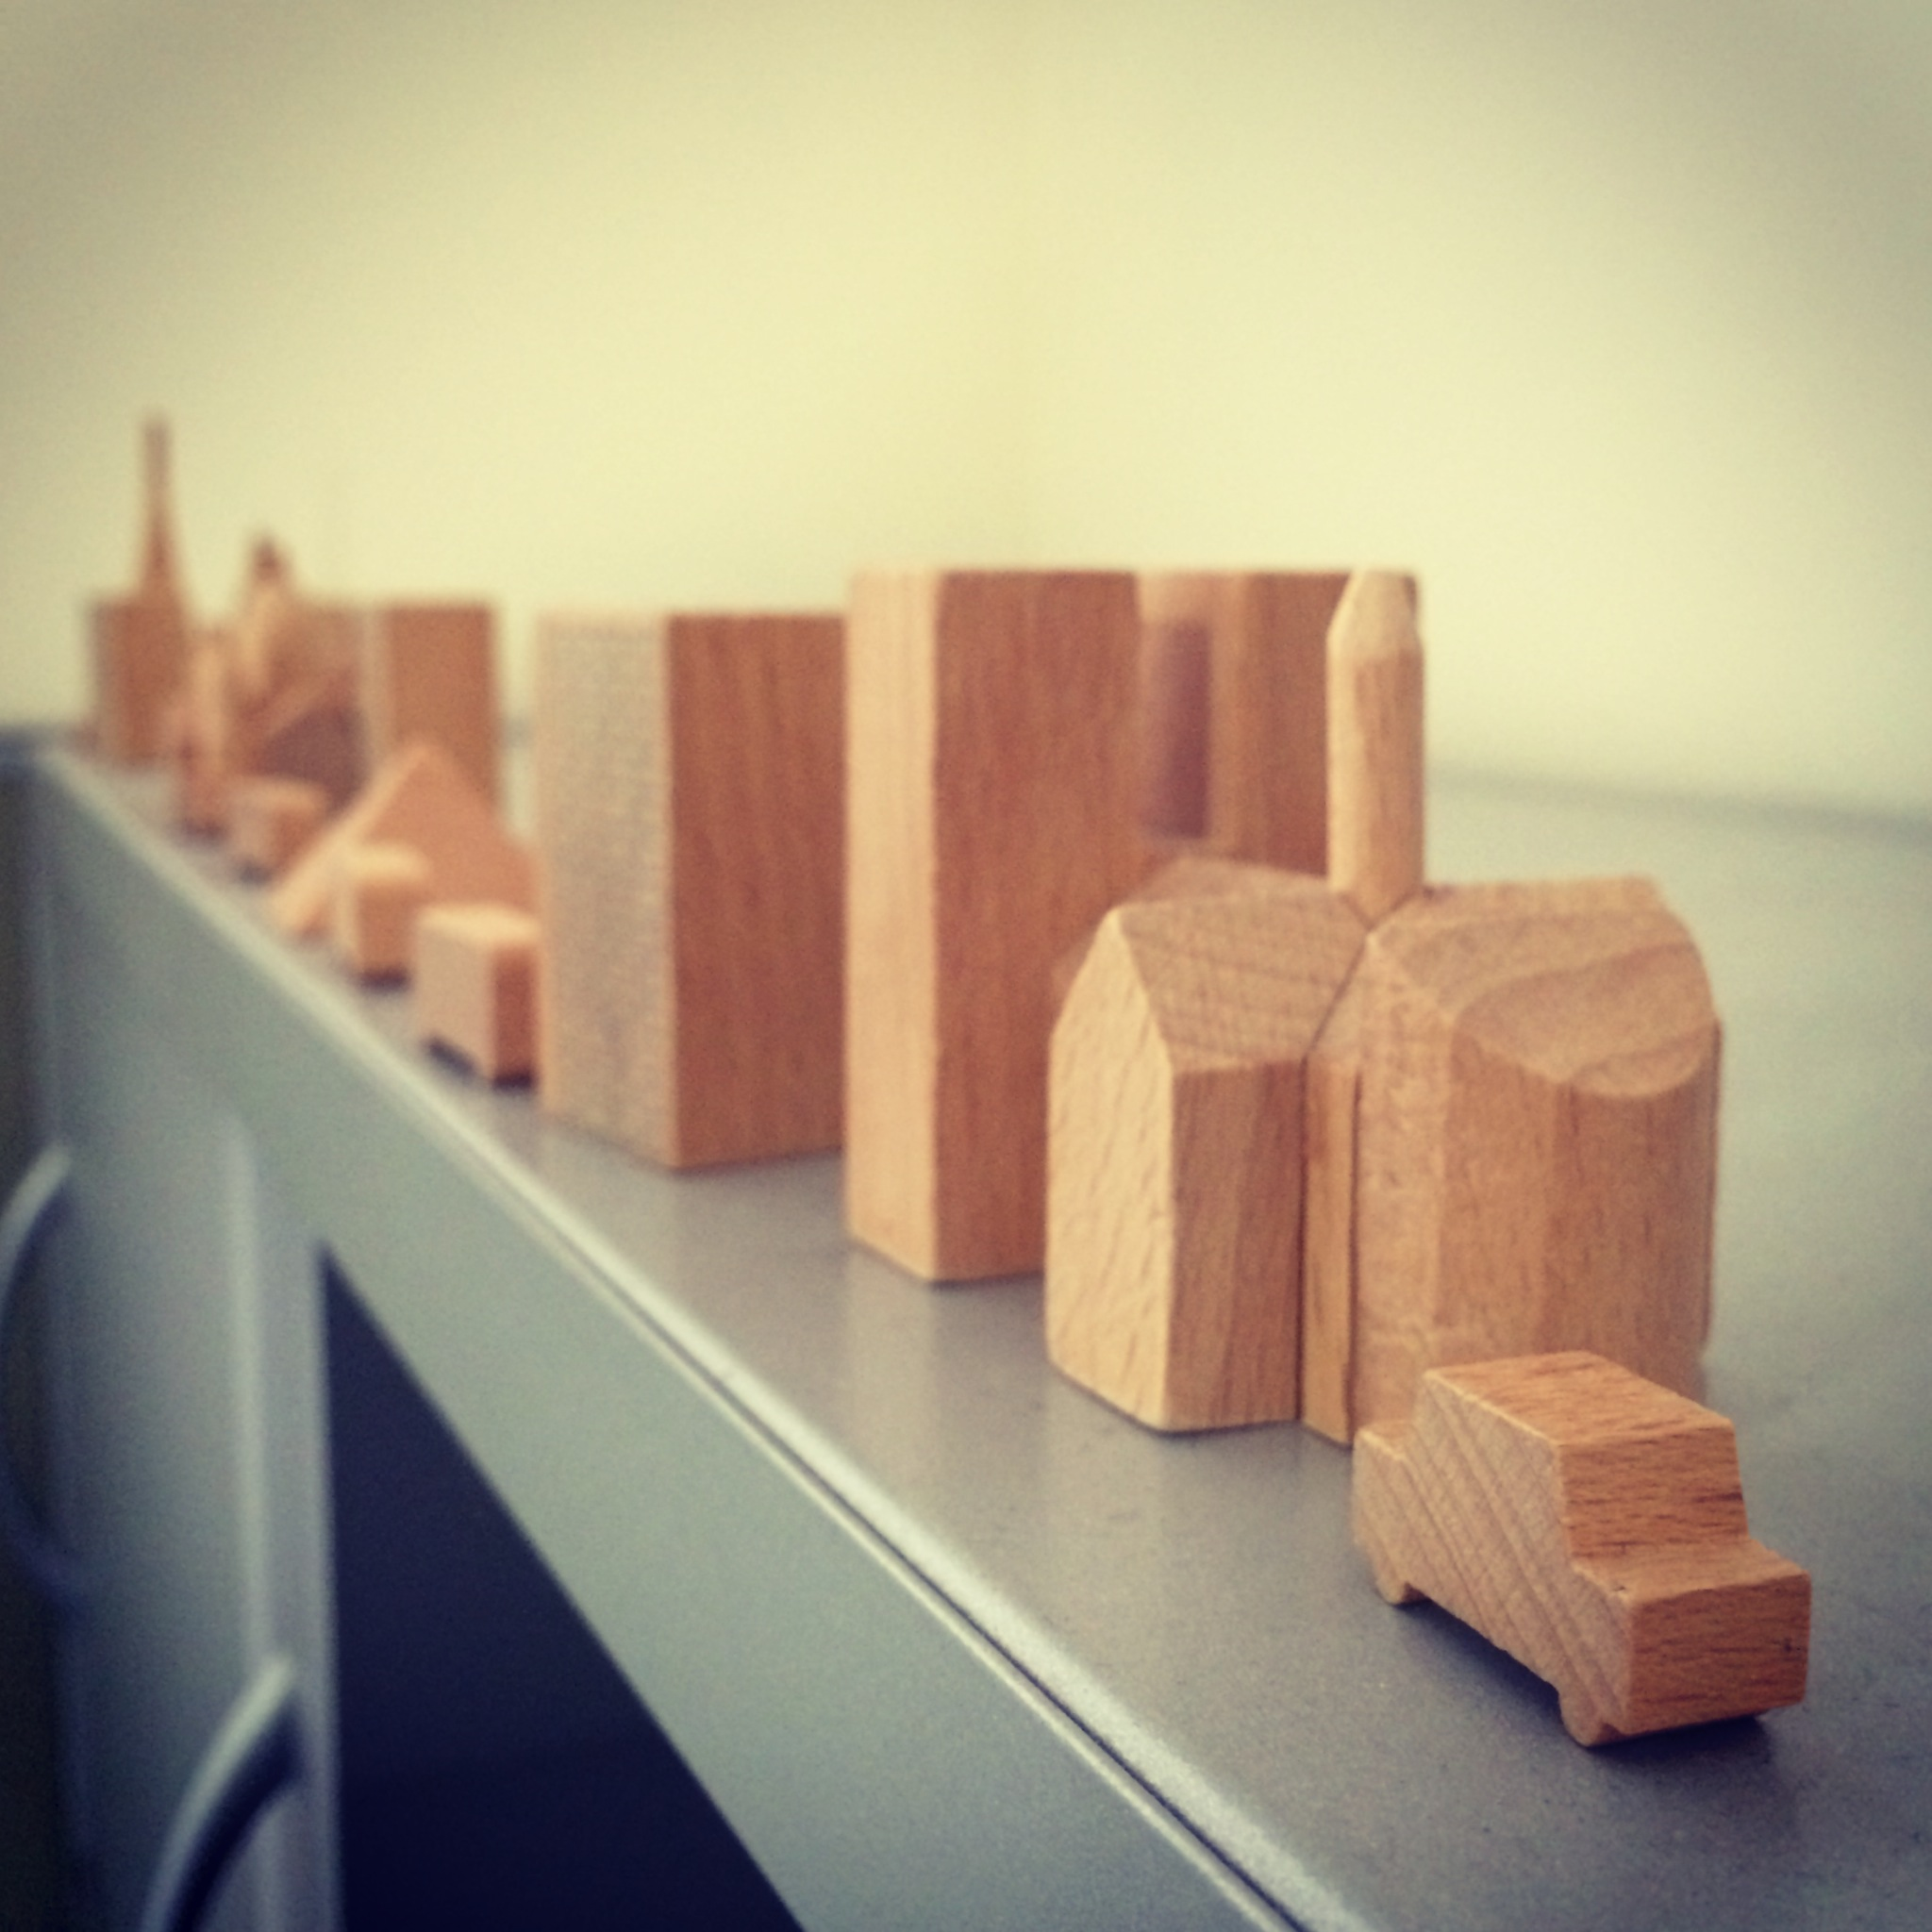 These are my favorite desk decor accessories: Muji's wooden block interpretation of gay Pay-ree.